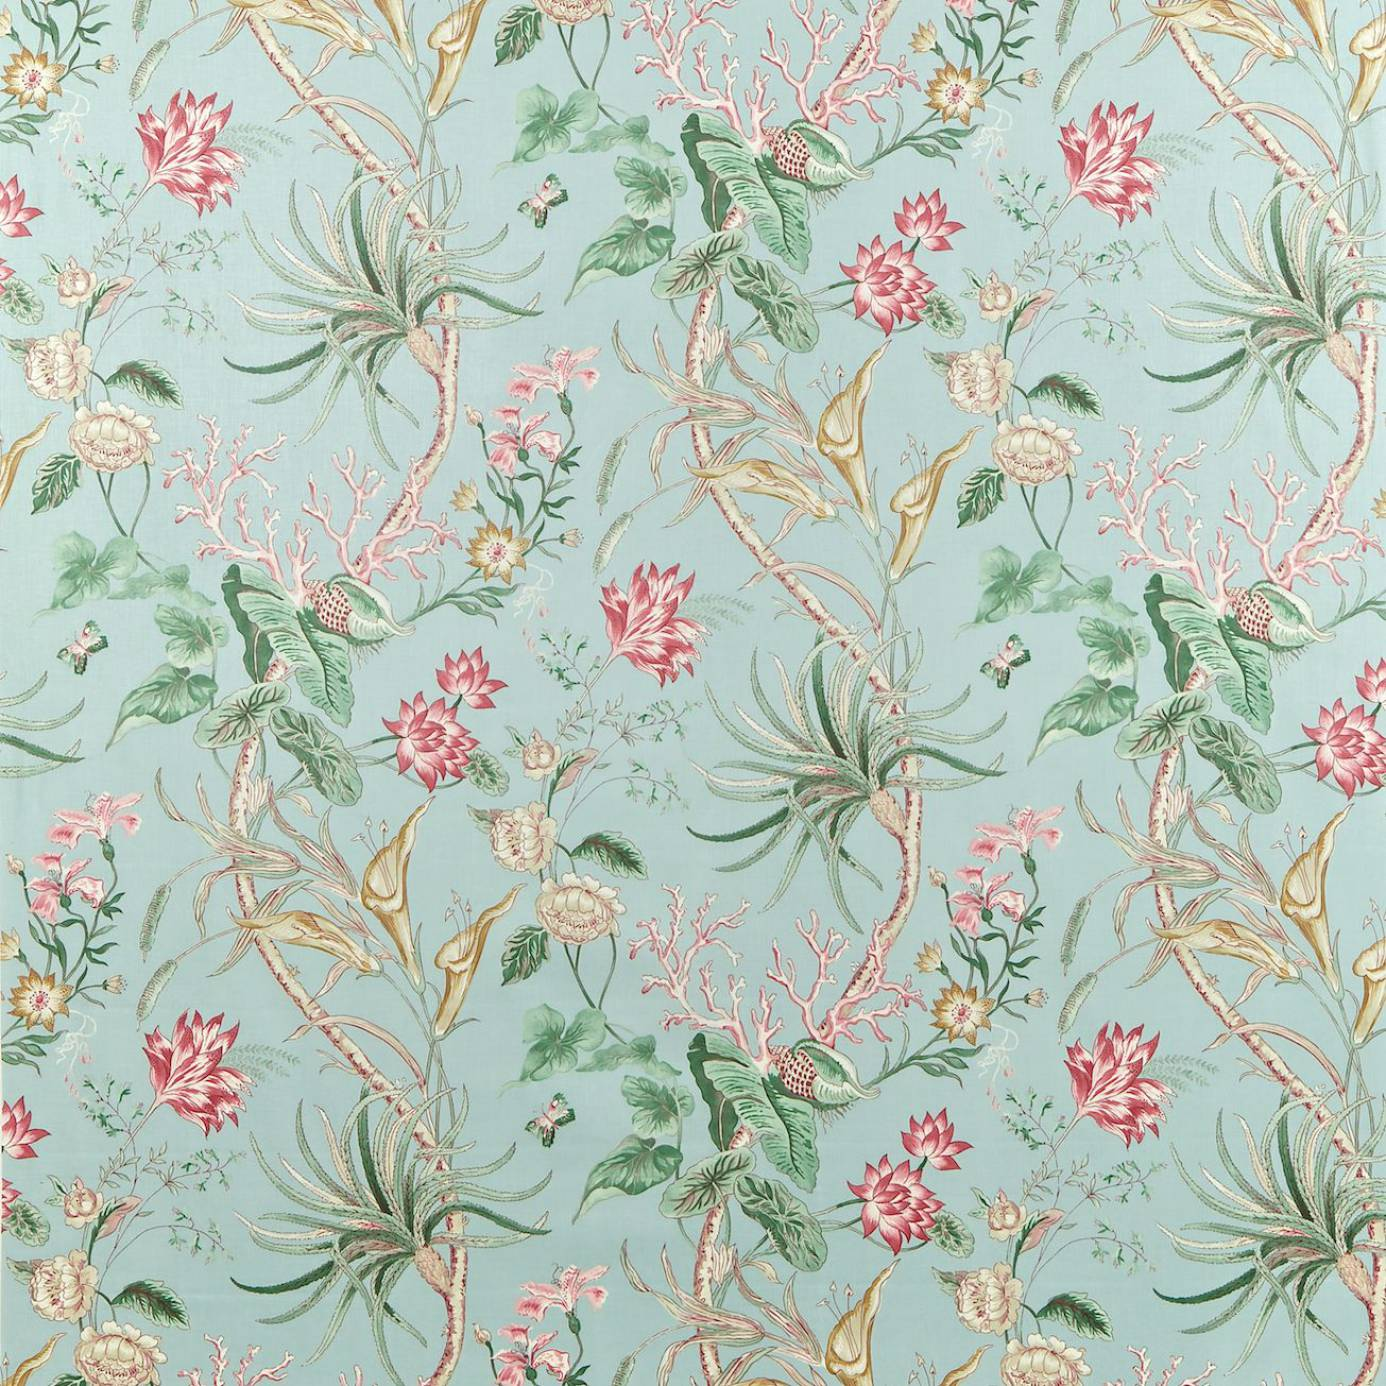 Curtains in mauritius fabric rose duckegg dcavma202 for Fabrics and materials